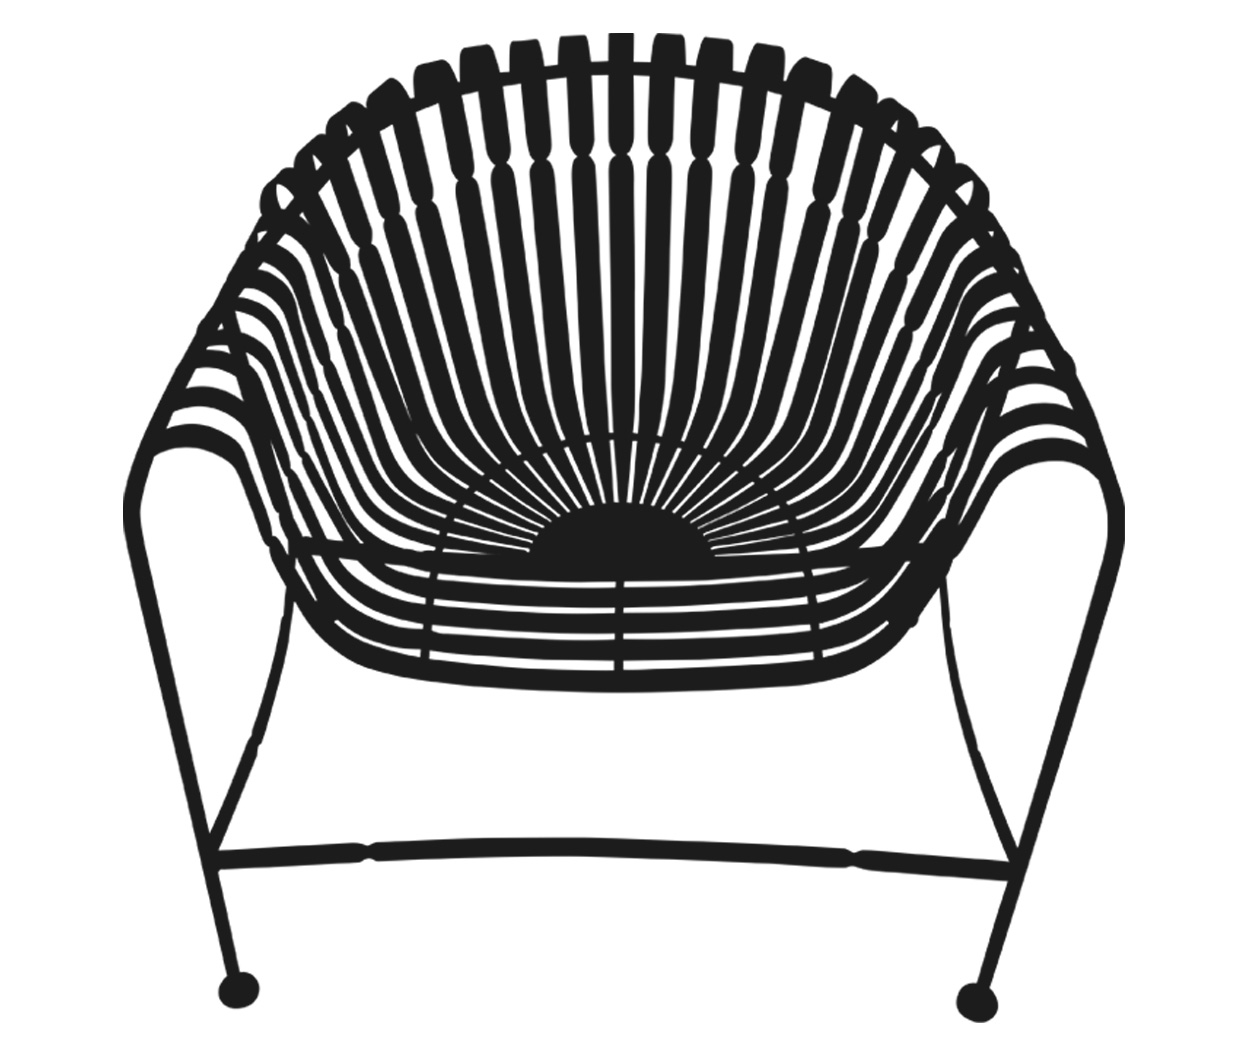 Sunburst Chair-Black